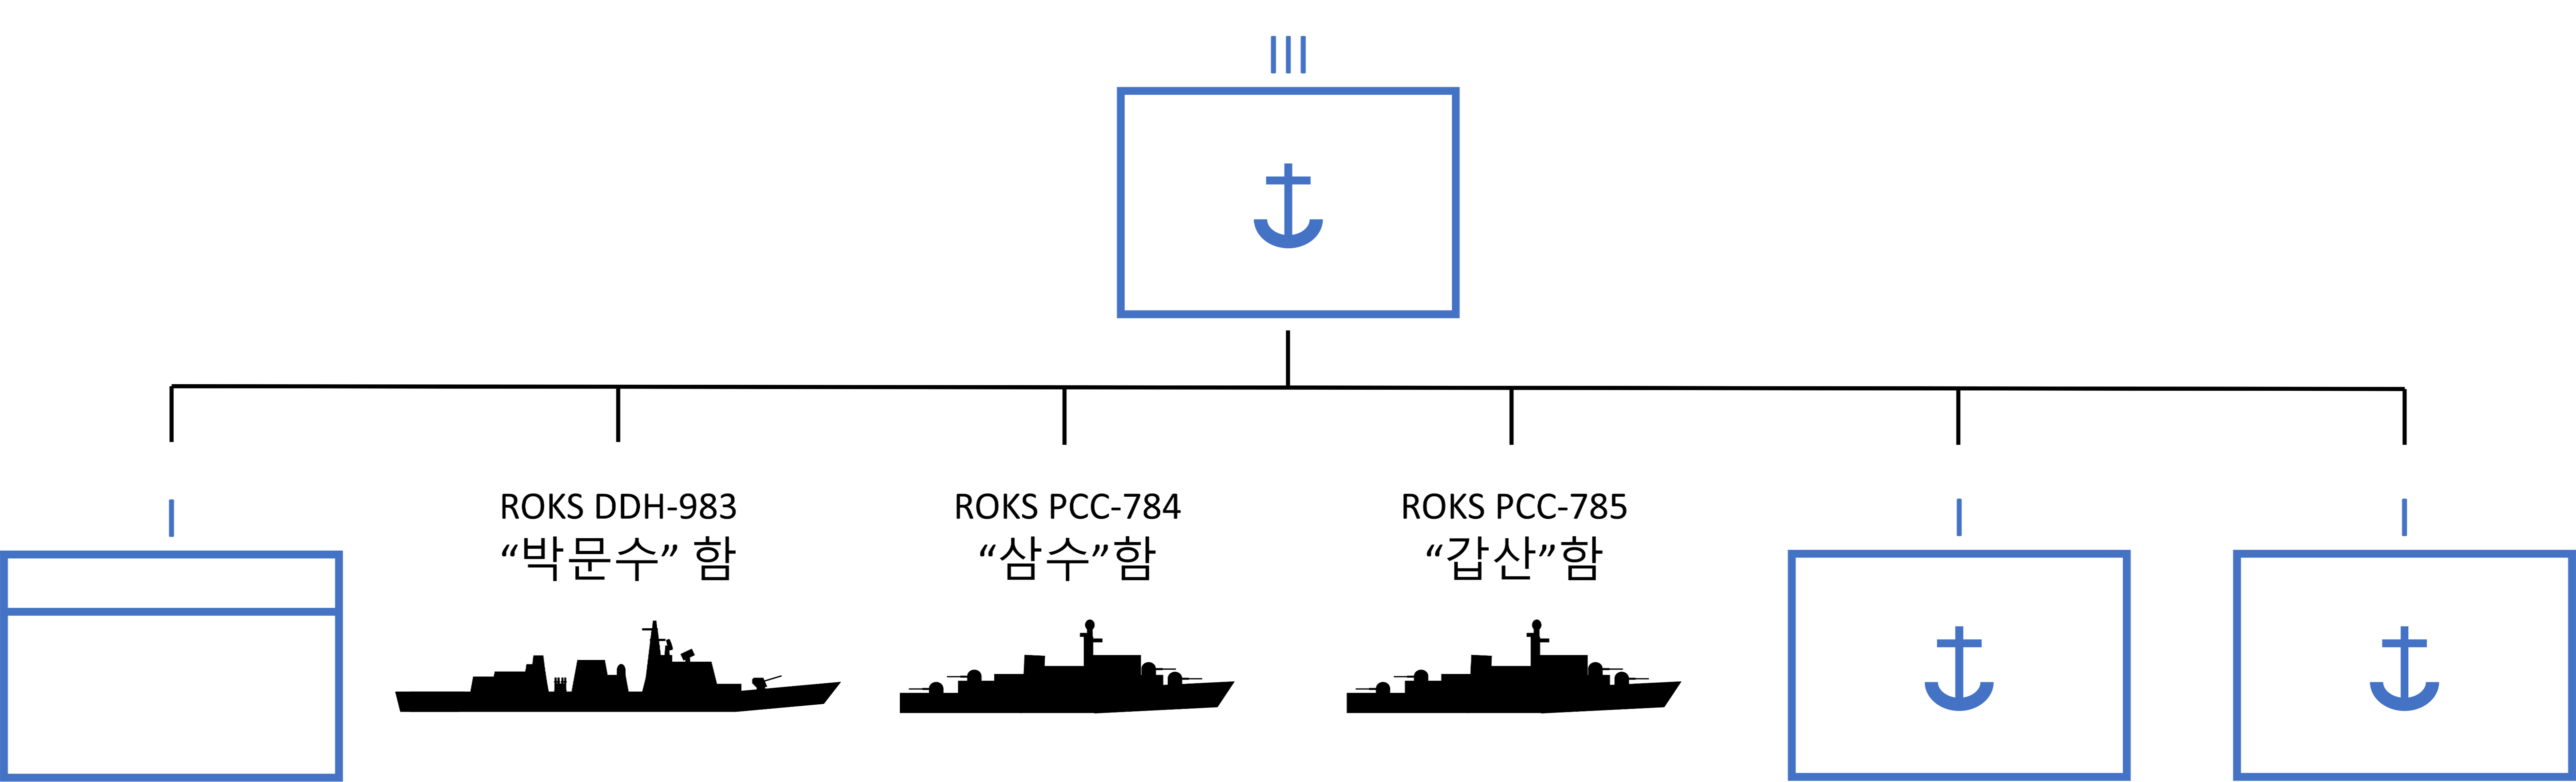 92NAVY.png